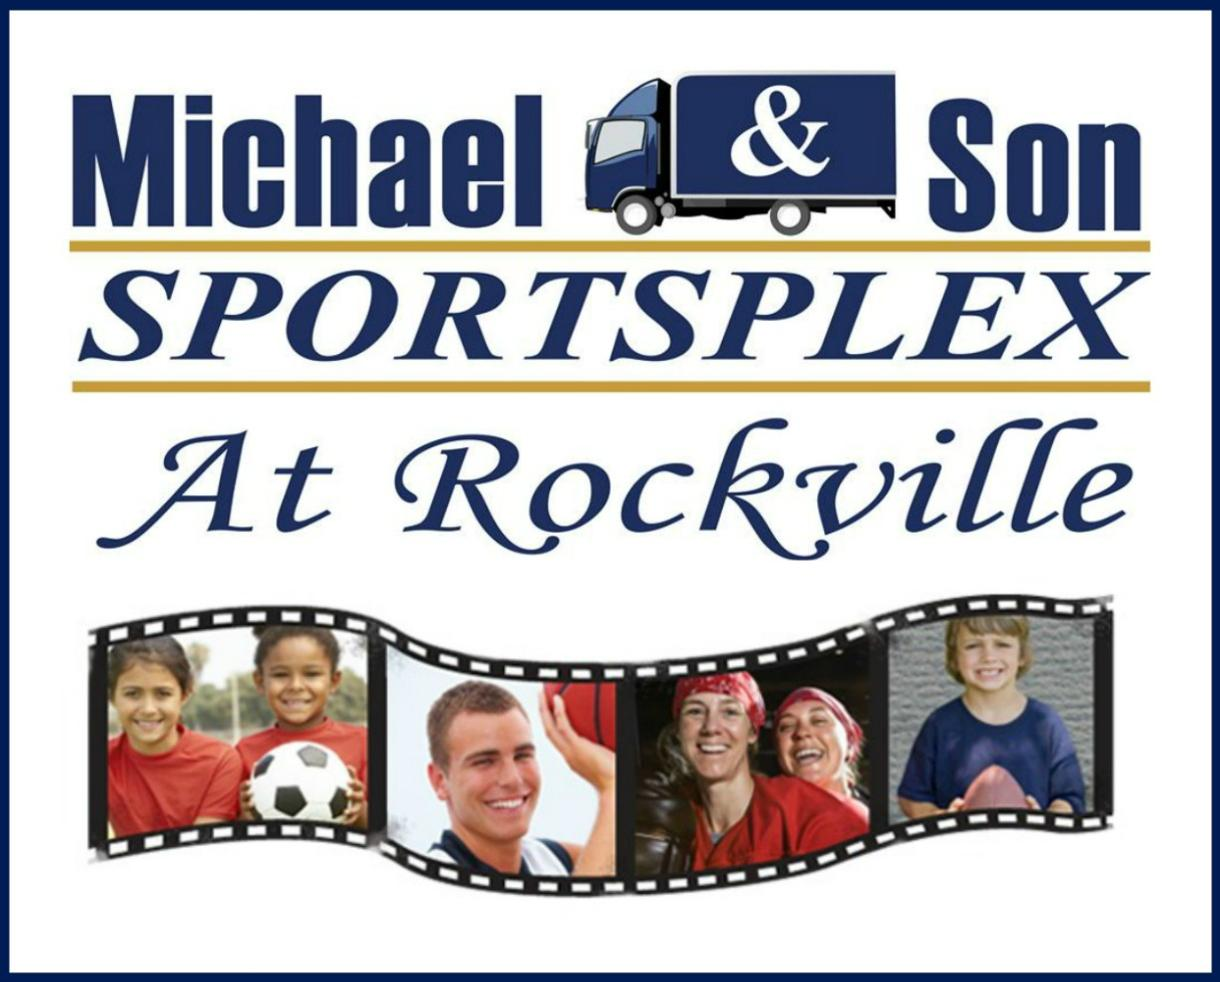 $120+ for Michael & Son Sportsplex Sports Camp for Ages 4-14 in Rockville - Multi-Sport, Soccer, Basketball, Baseball - Lunch Included! (20% Off)